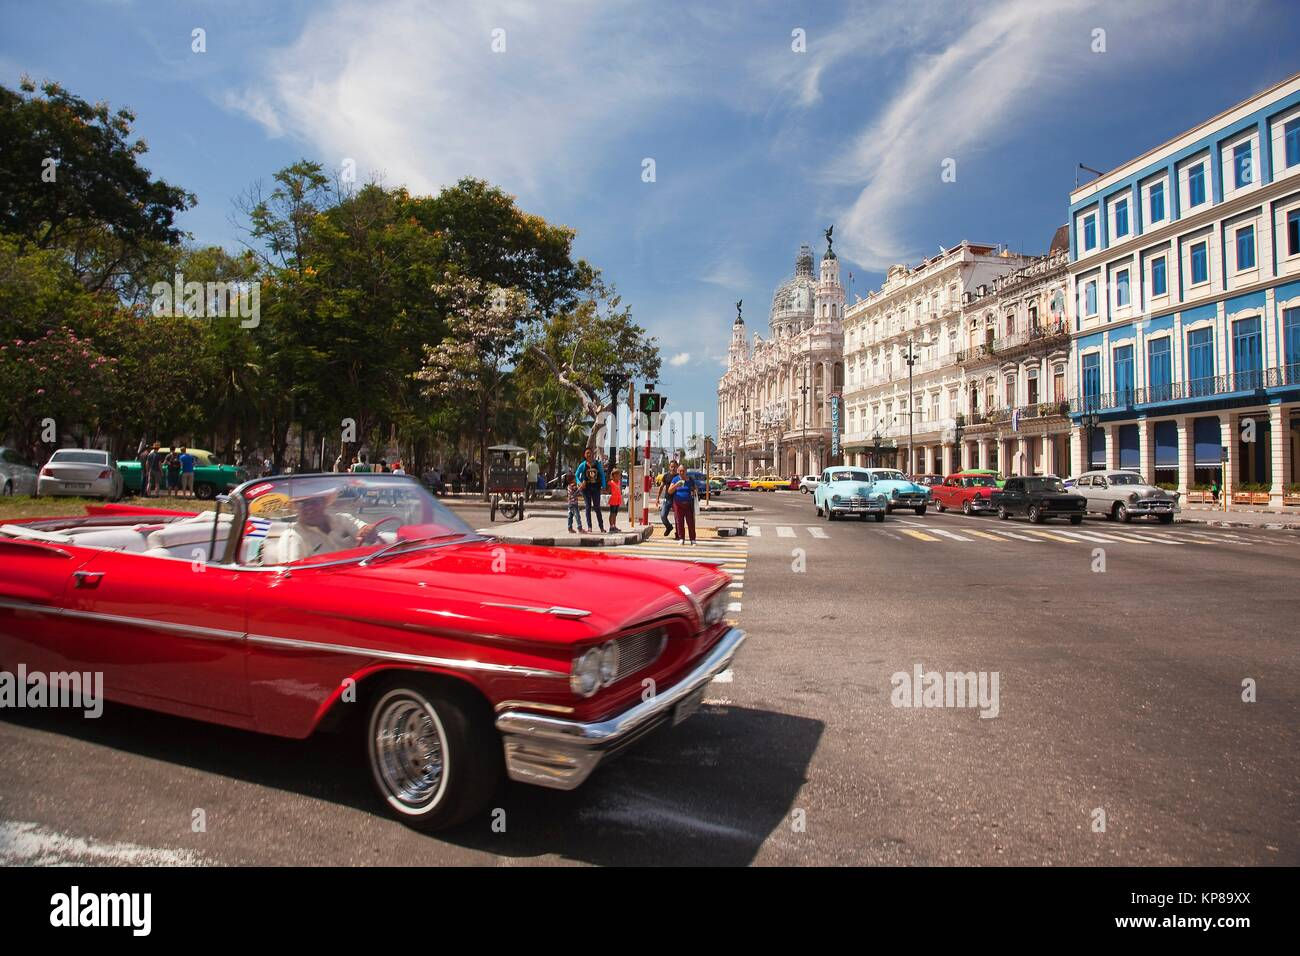 Vintage American car used as taxi in Central Havana with the Hotel Telegrafo, Hotel Inglaterra, Gran Teatro and - Stock Image